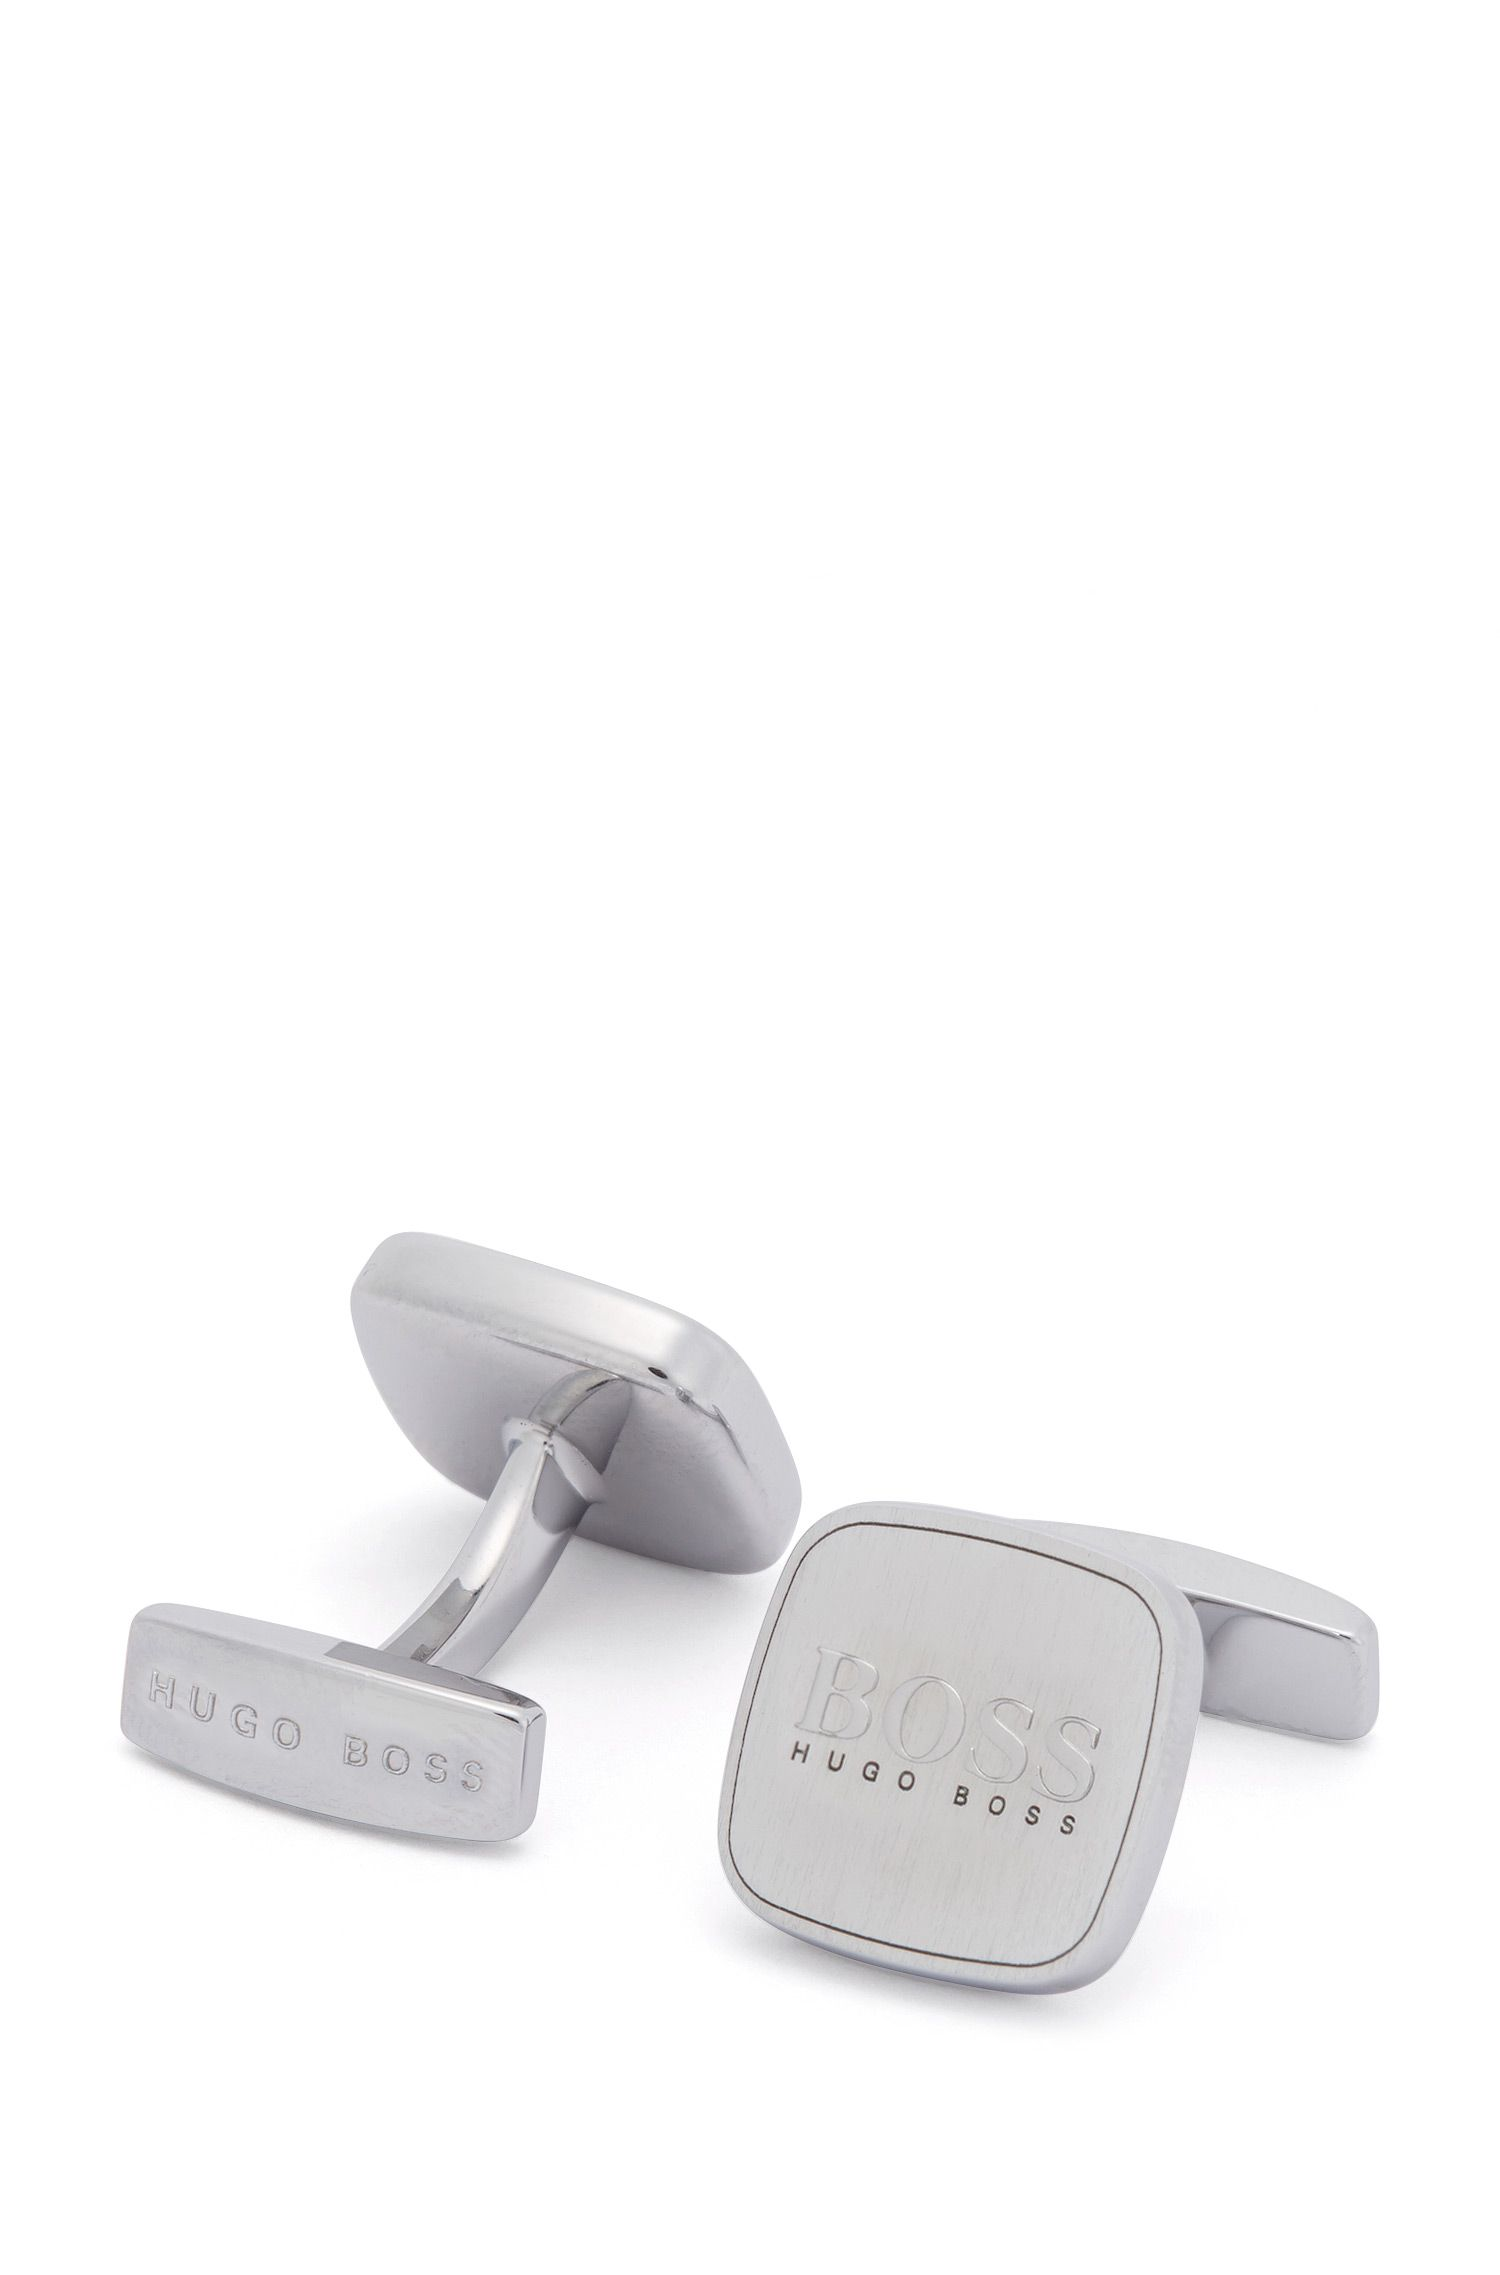 Square cufflinks with brushed metal logo insert